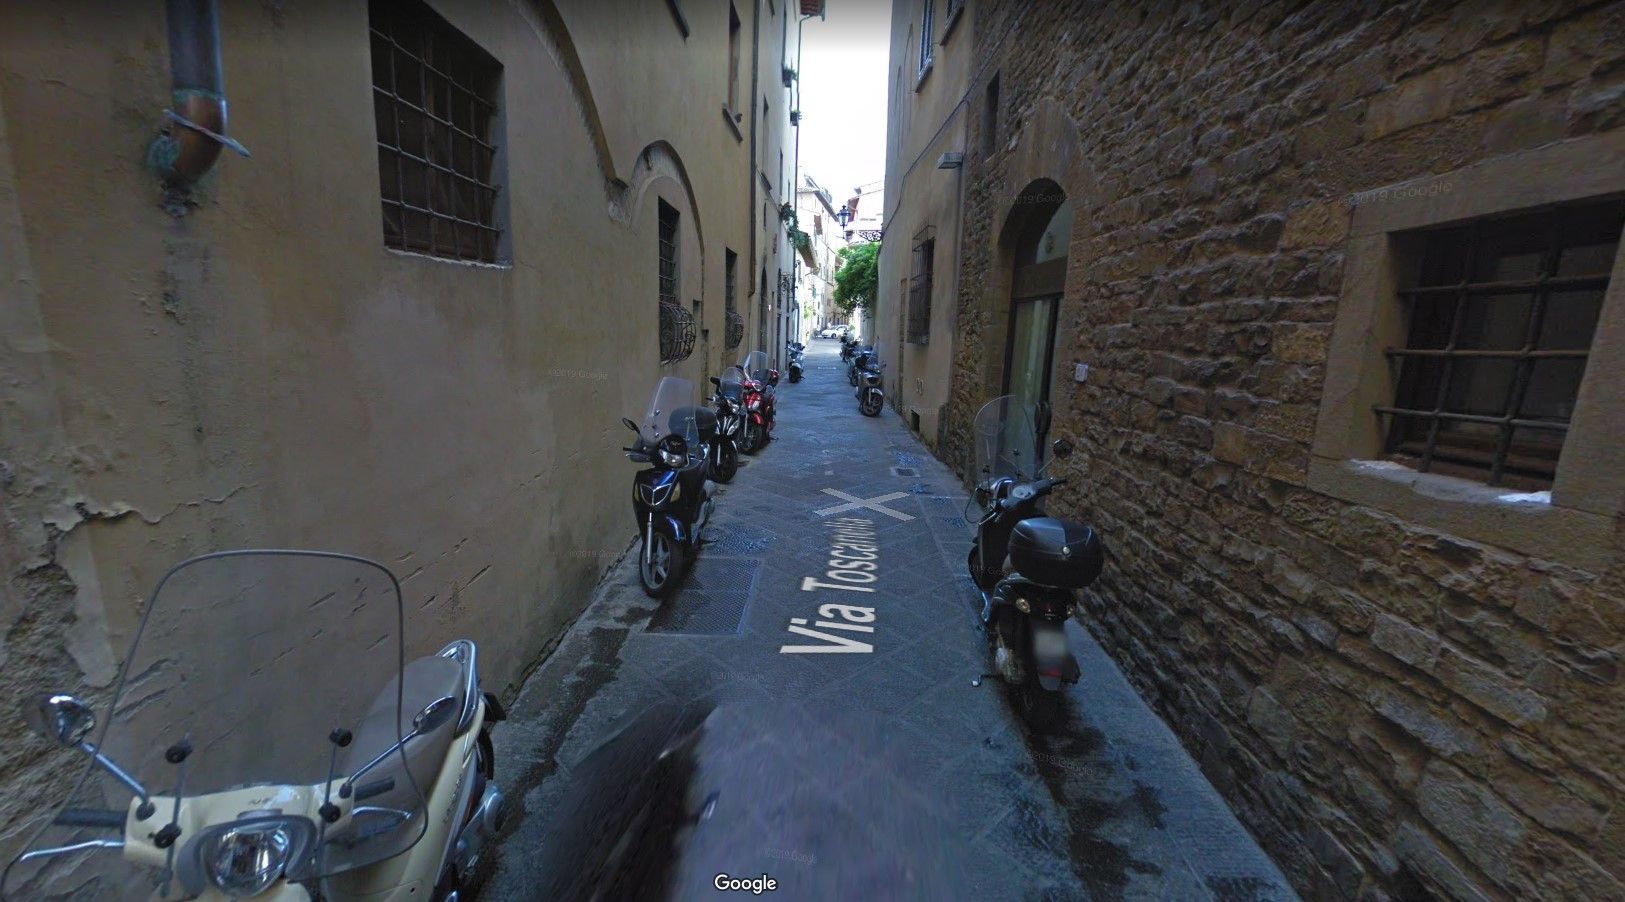 tuscany-florence-google-map